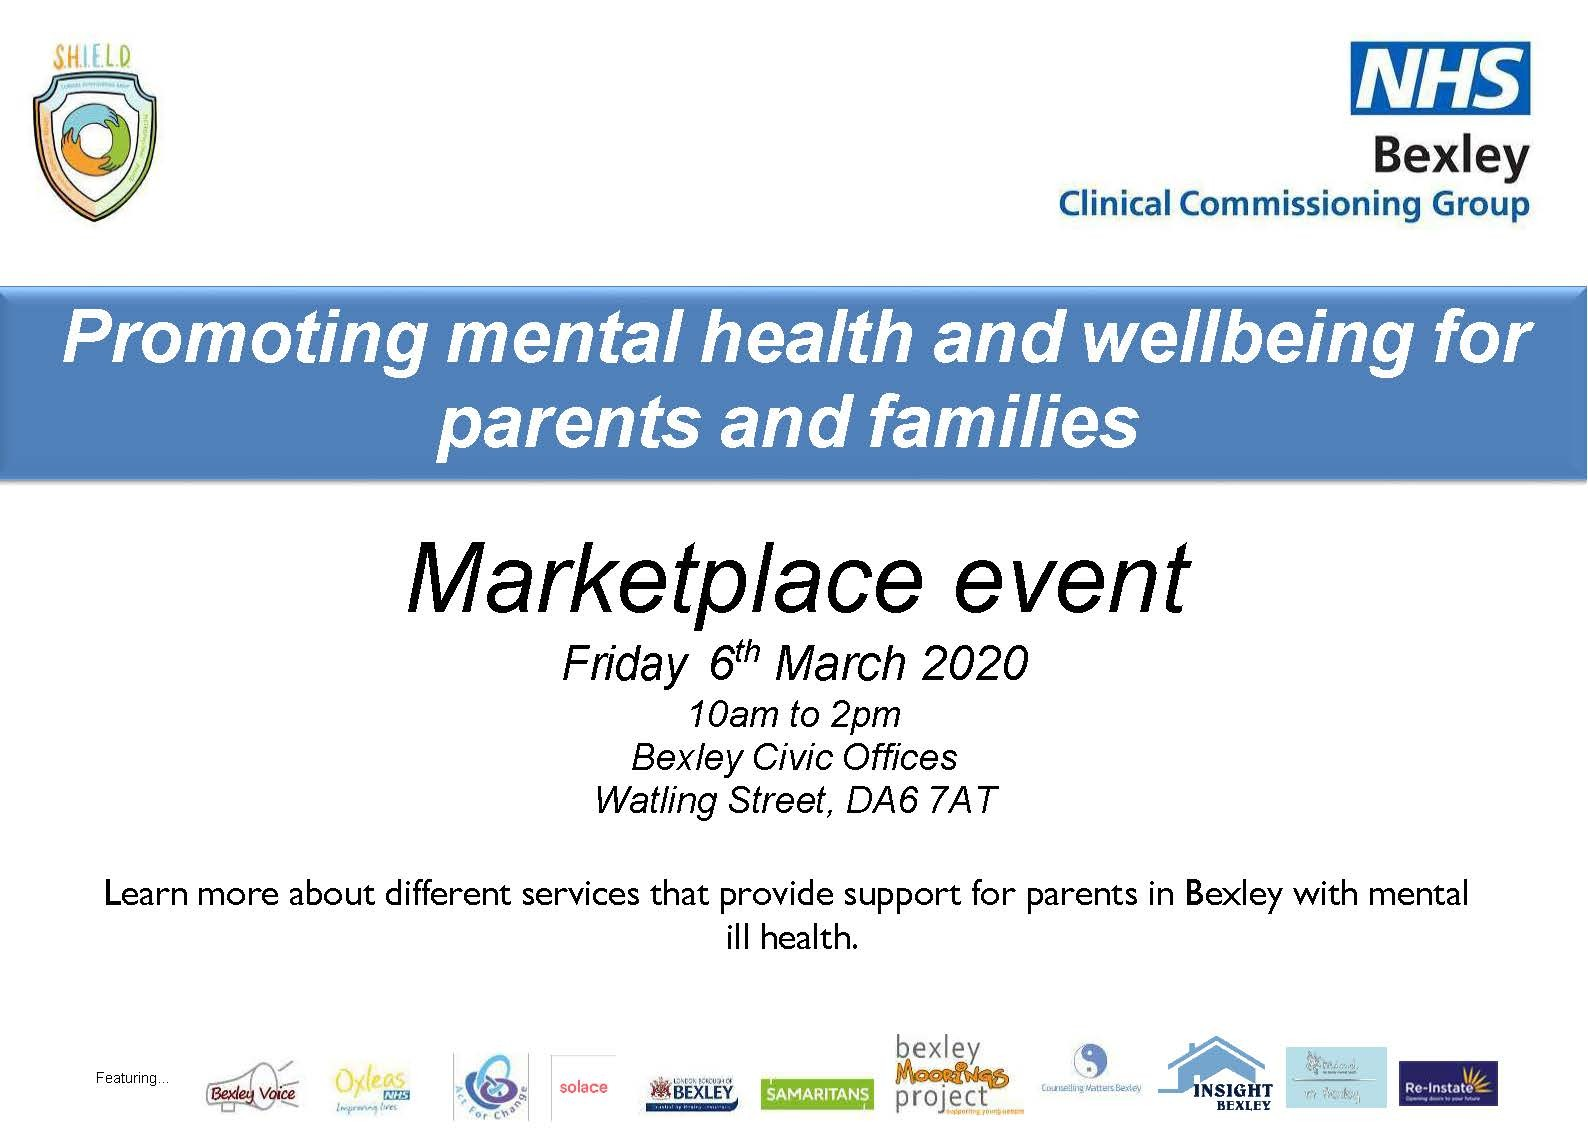 Promoting mental health and wellbeing for parents and families